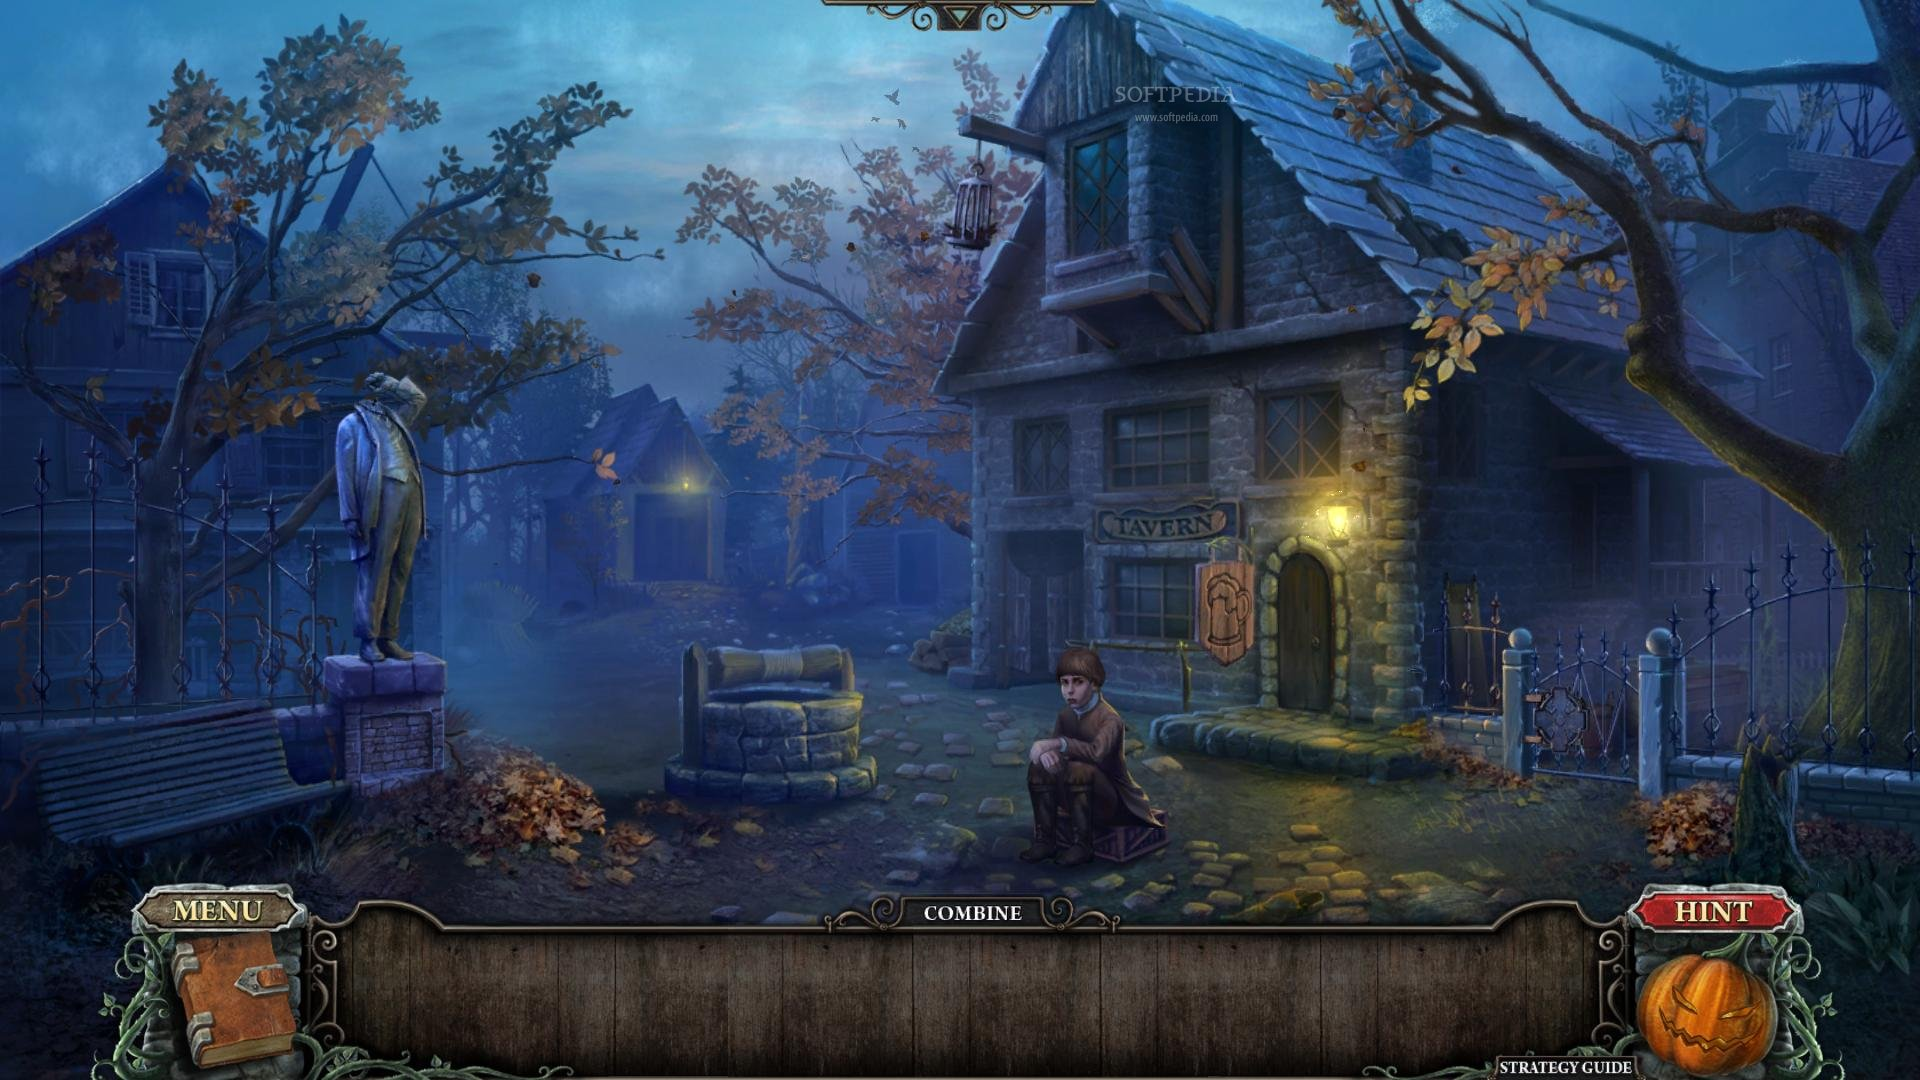 Cursed Fates: The Headless Horseman screenshot 11